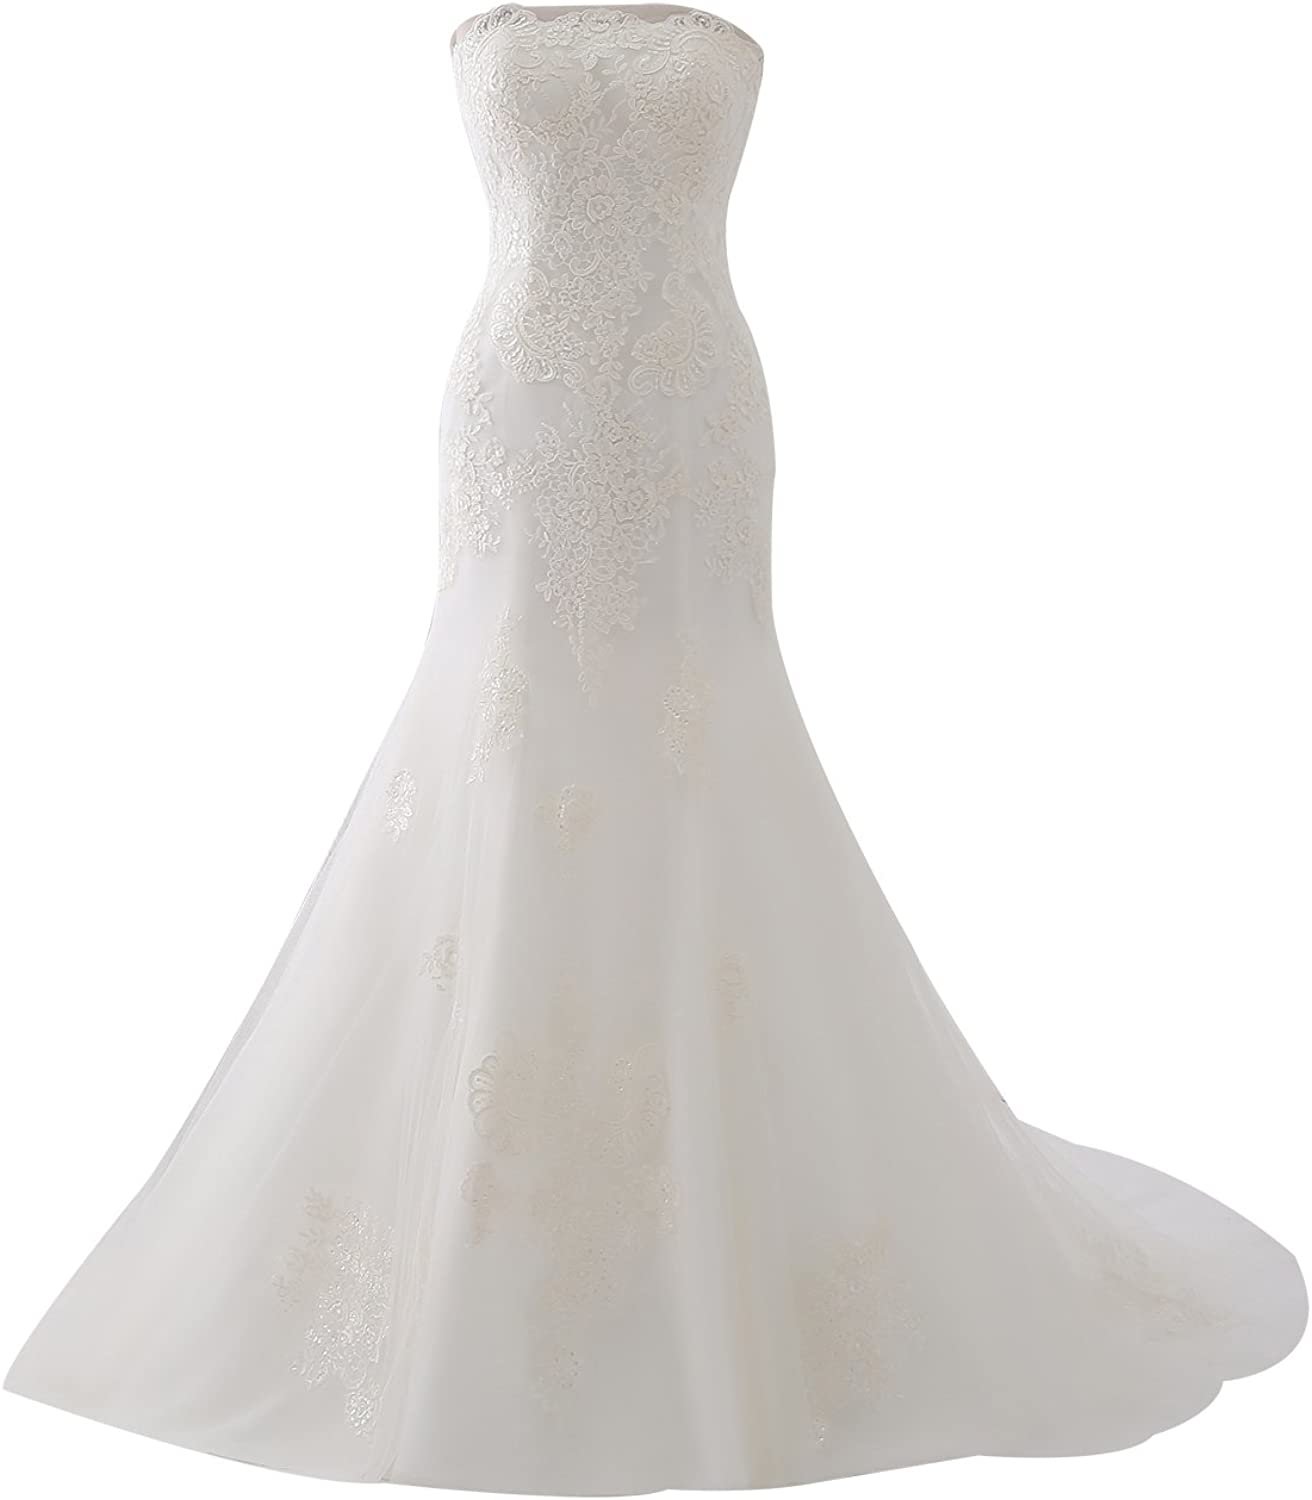 Epinkbridal Lace Mermaid Wedding Dress Gowns Strapless Off Shoulder Bridal Gowns